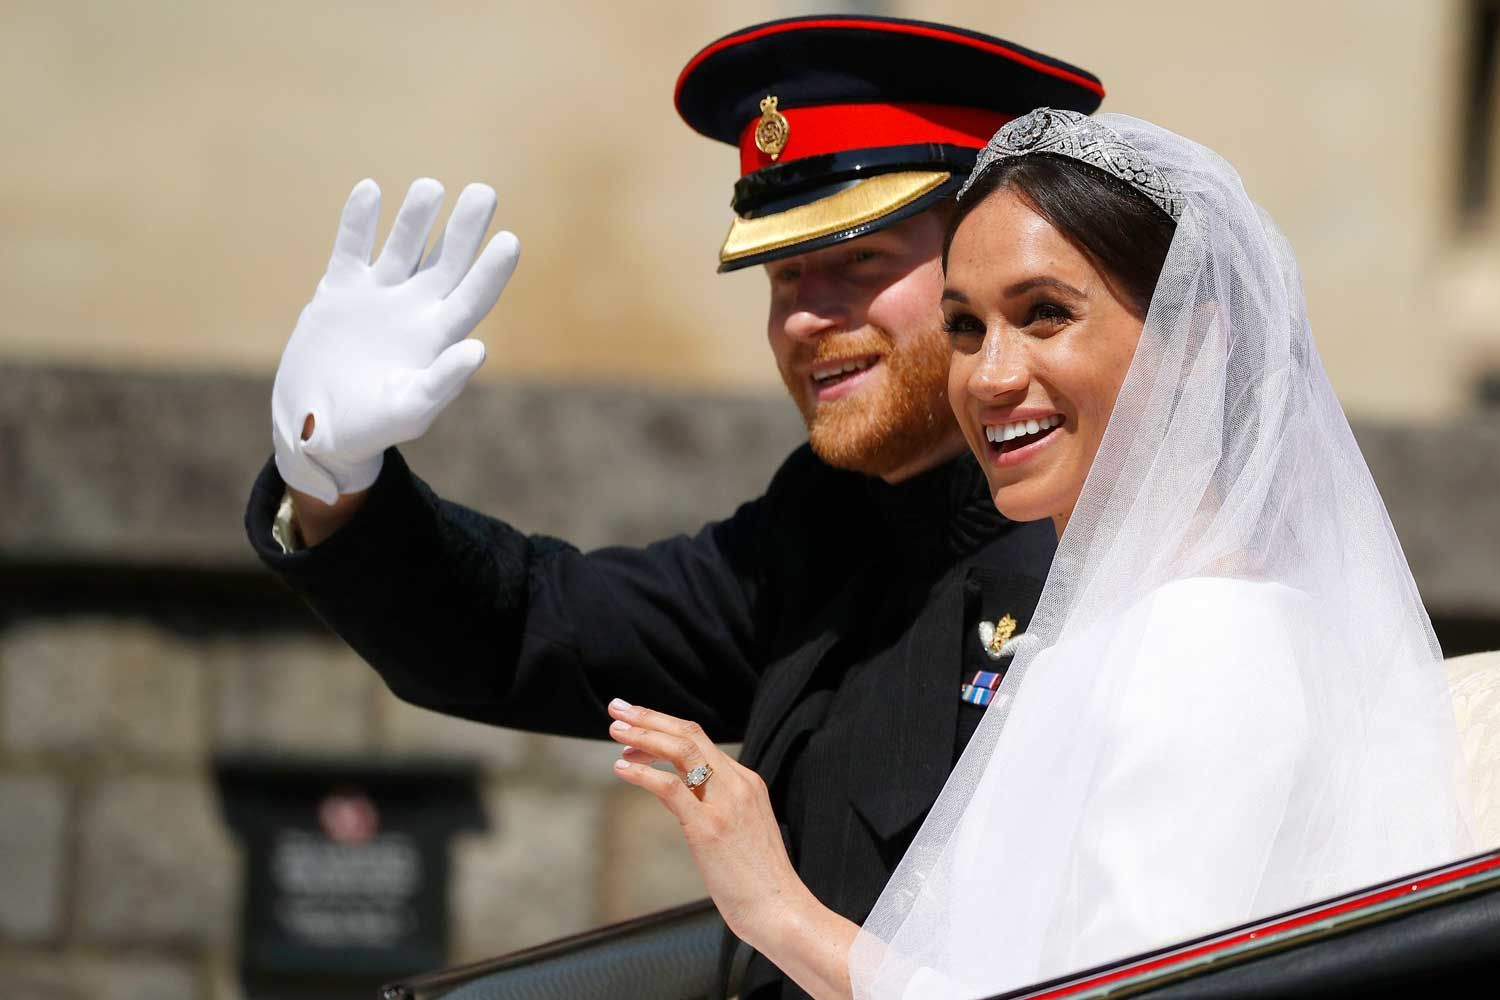 Prince Harry and Meghan Markle Are Apologizing to Well-wishers for This Hilarious Reason